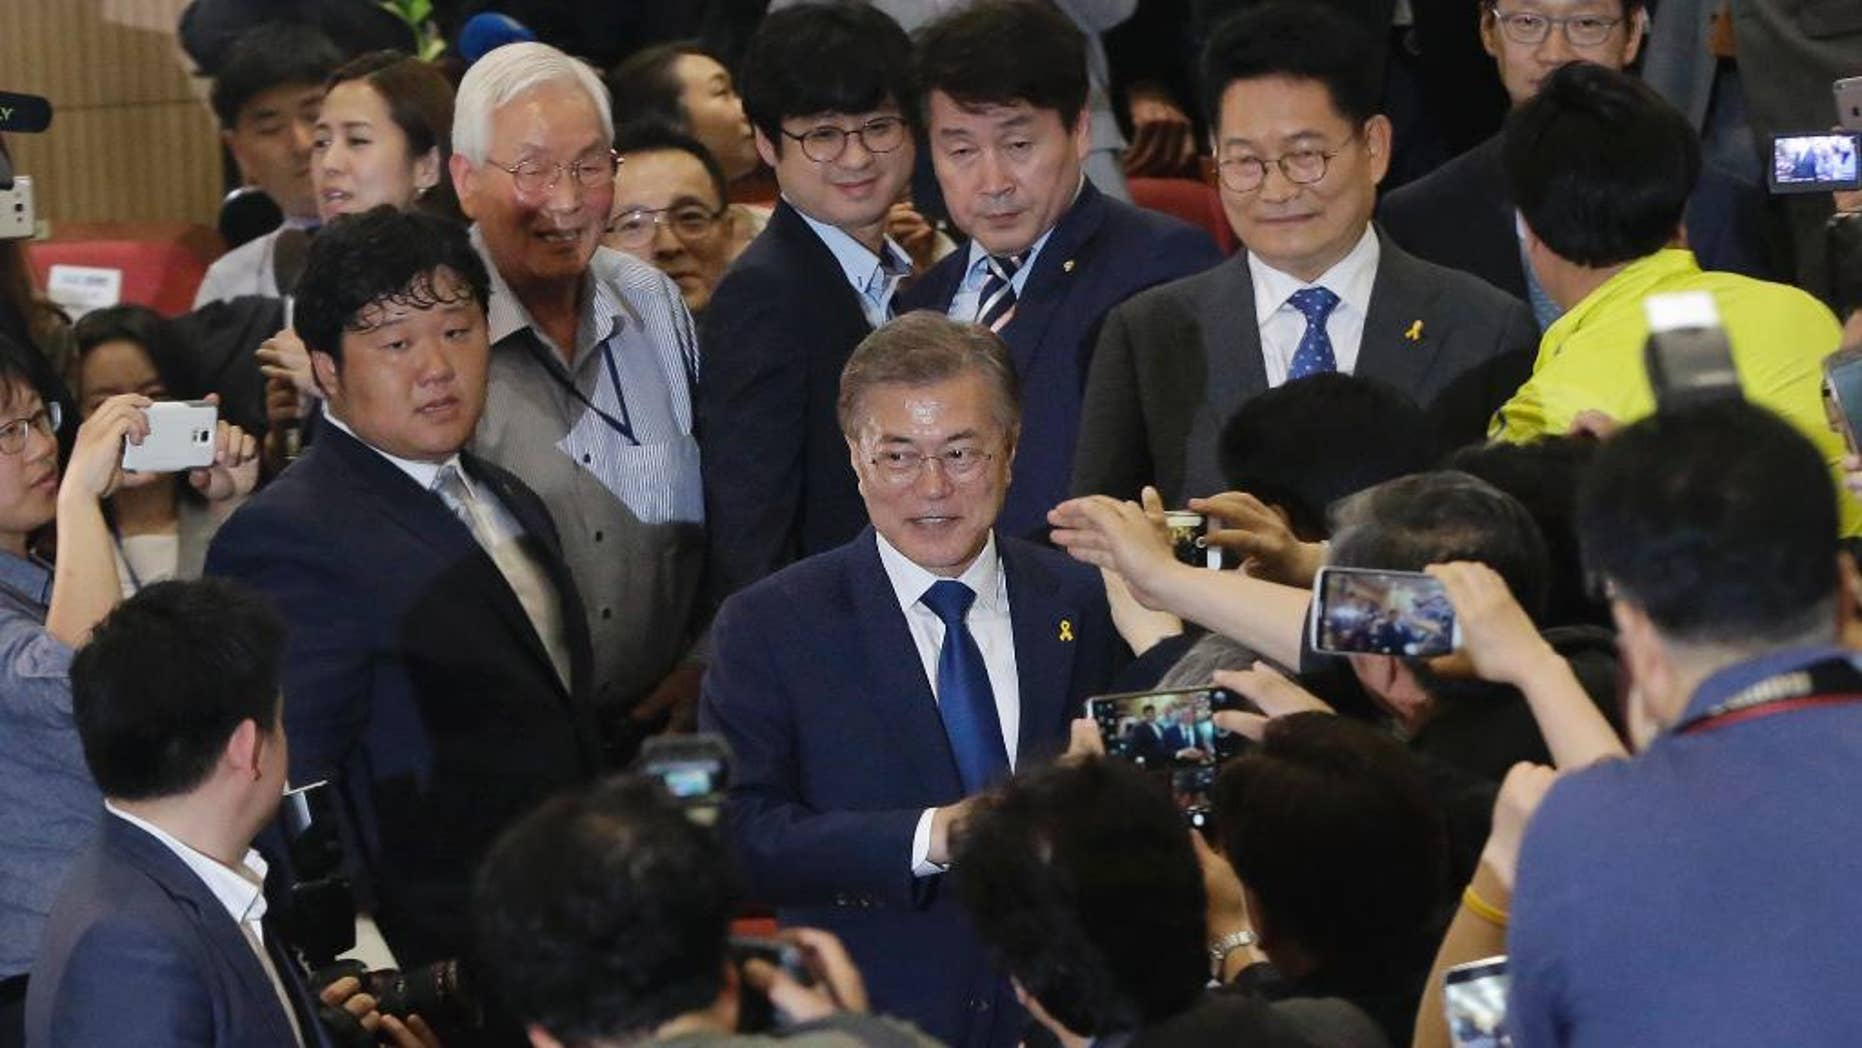 South Korea's presidential candidate Moon Jae-in, center, of the Democratic Party is celebrated by his party leaders and members as they watch the local media's results of exit polls for the presidential election on television in Seoul, South Korea, Tuesday, May 9, 2017. Exit polls forecast that liberal candidate Moon will win the election Tuesday to succeed ousted President Park Geun-hye. (AP Photo/Ahn Young-joon)